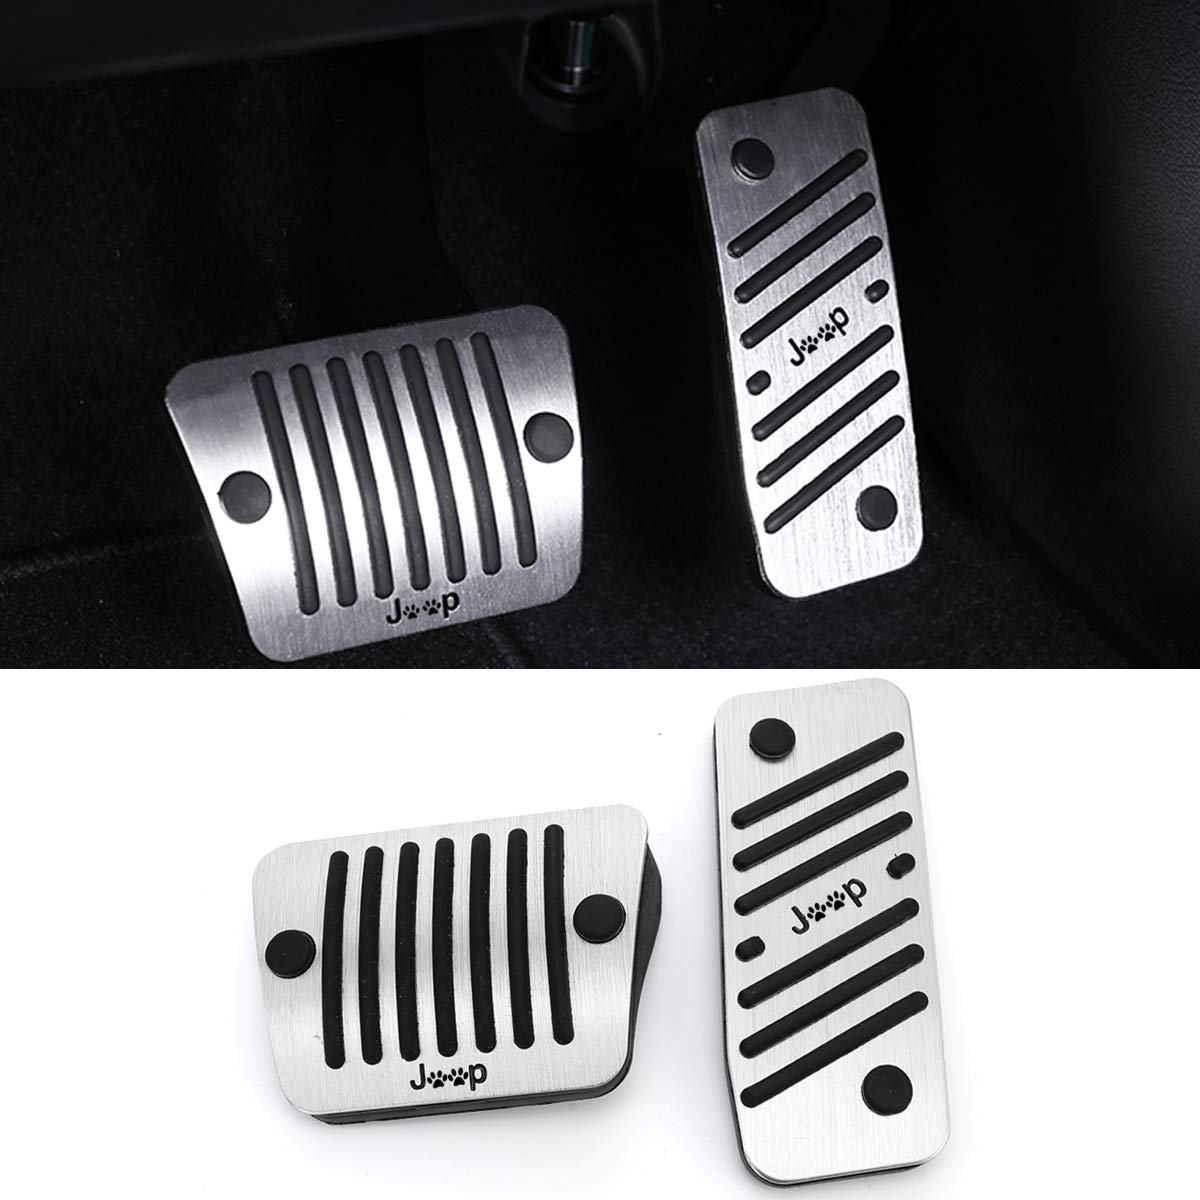 No Drill Gas Brake Pedal Compatible with Jeep Renegade/Compass, Jaronx Aluminum Alloy Anti-slip AT Accelerator Pedal Covers Brake Pedal Pads (Compatible with:Jeep Renegade and Compass)